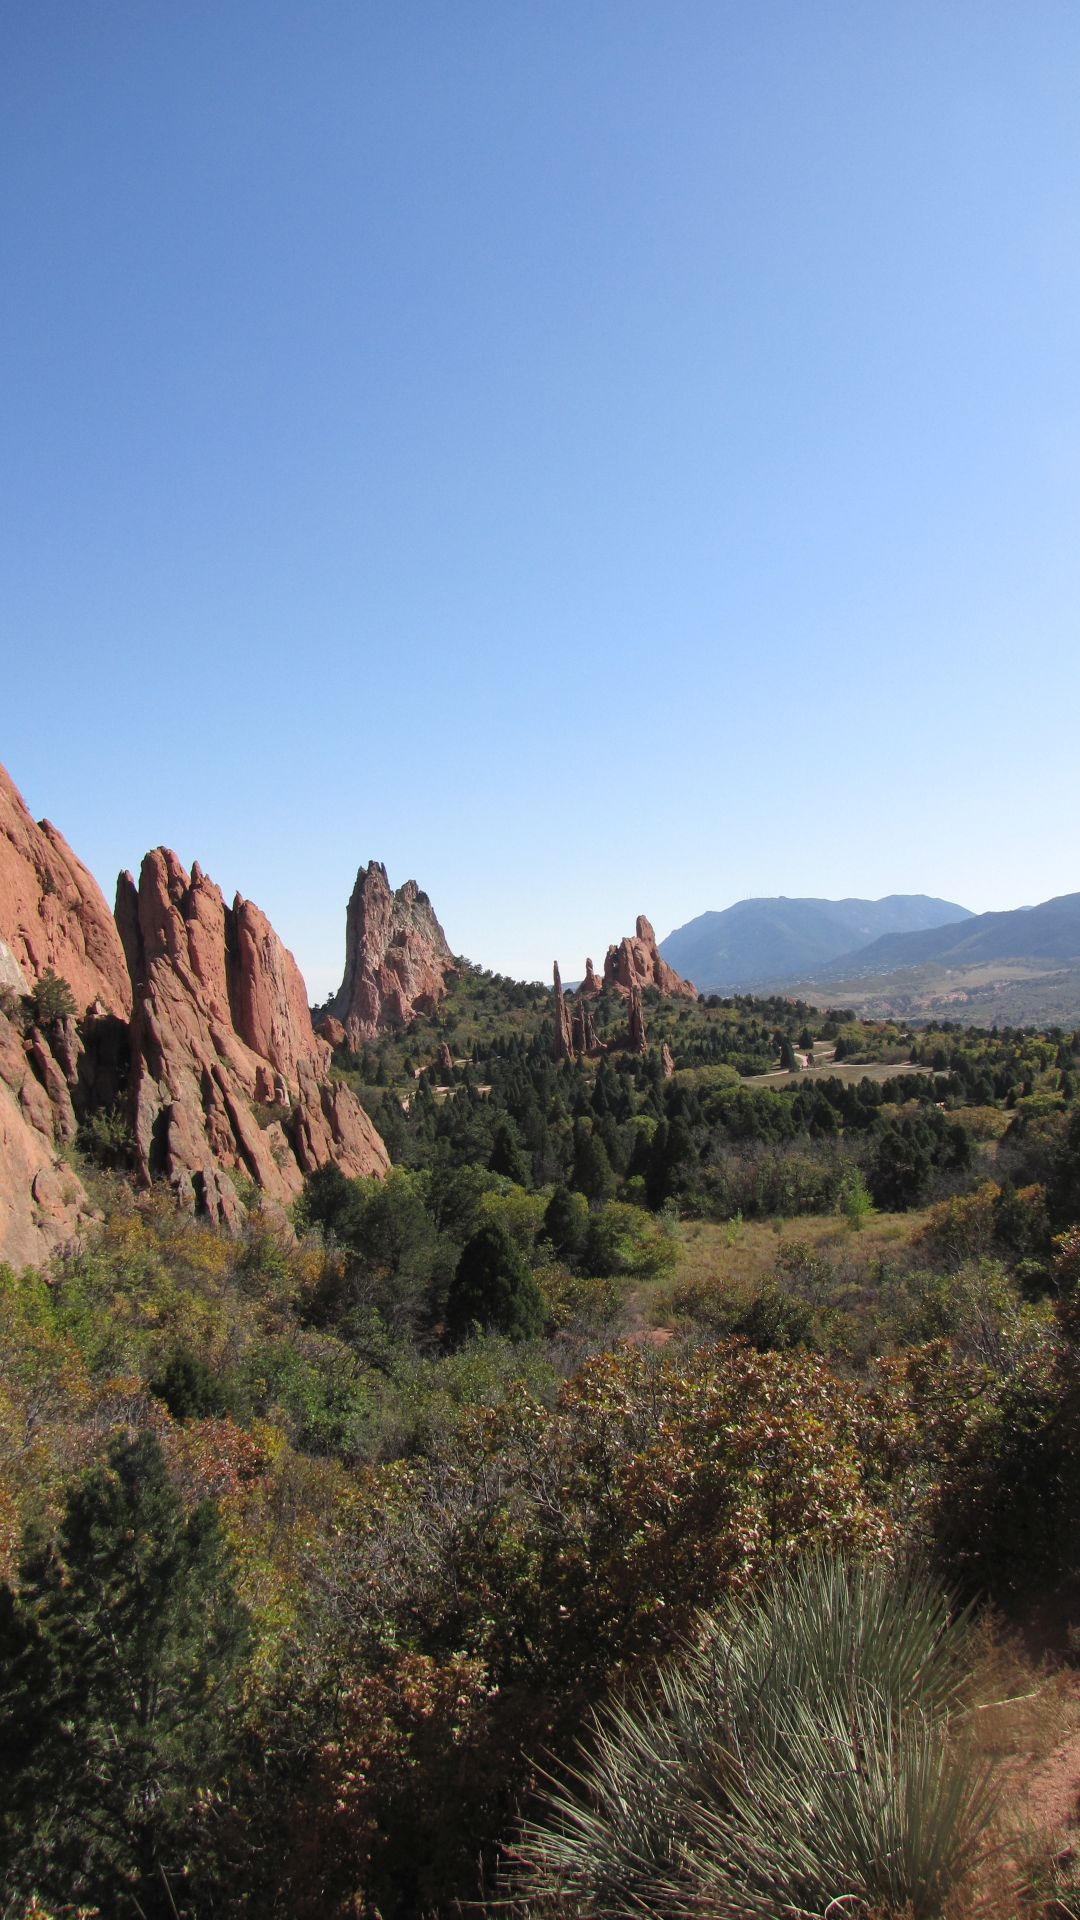 Garden of the Gods, nr CO Springs, CO, USA - Pretty pretty